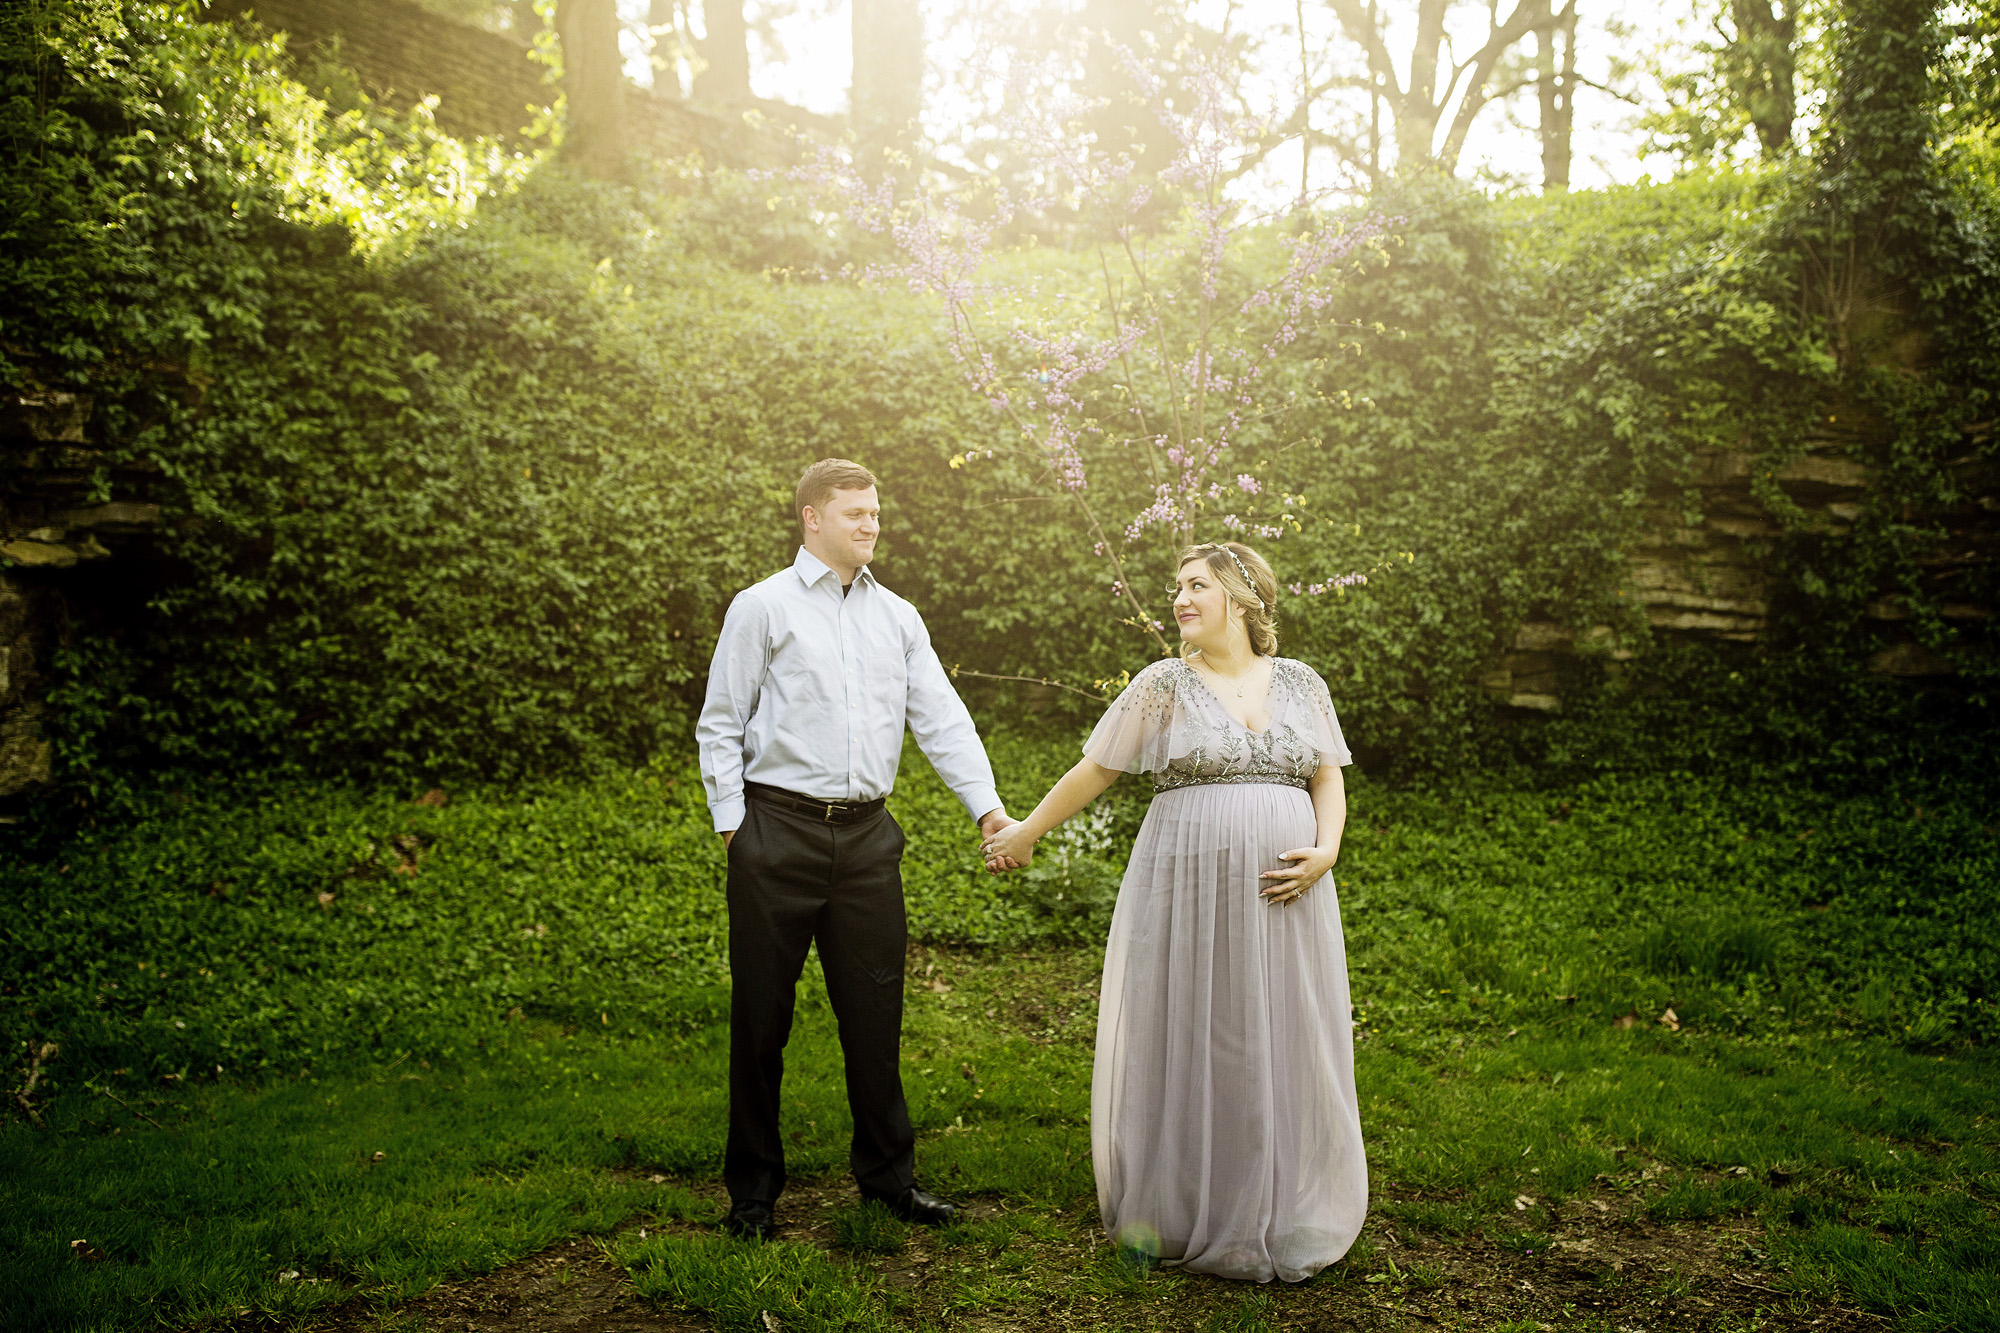 Seriously_Sabrina_Photography_Lexington_Kentucky_Fairytale_Maternity_Portraits_Horse_Park_Reynolds_4.jpg